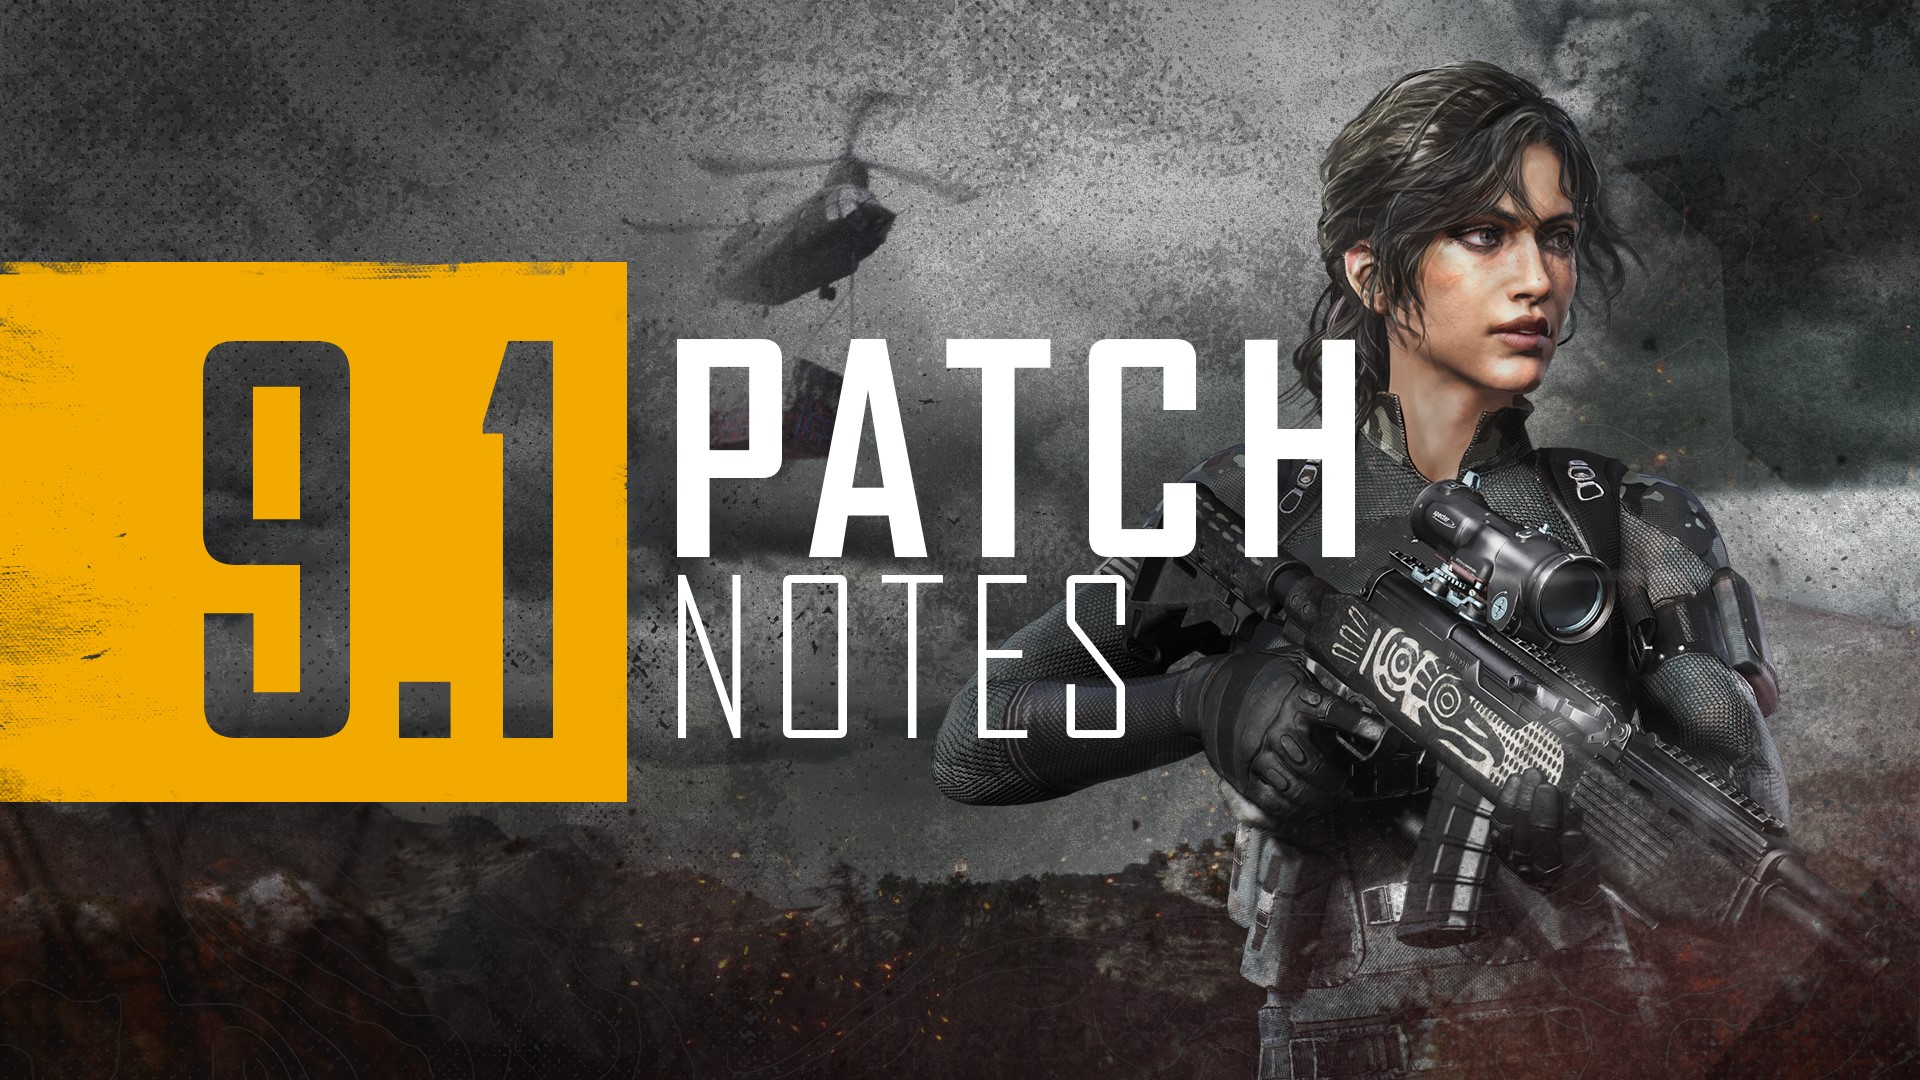 Advertising PUBG 9.1 patch notes